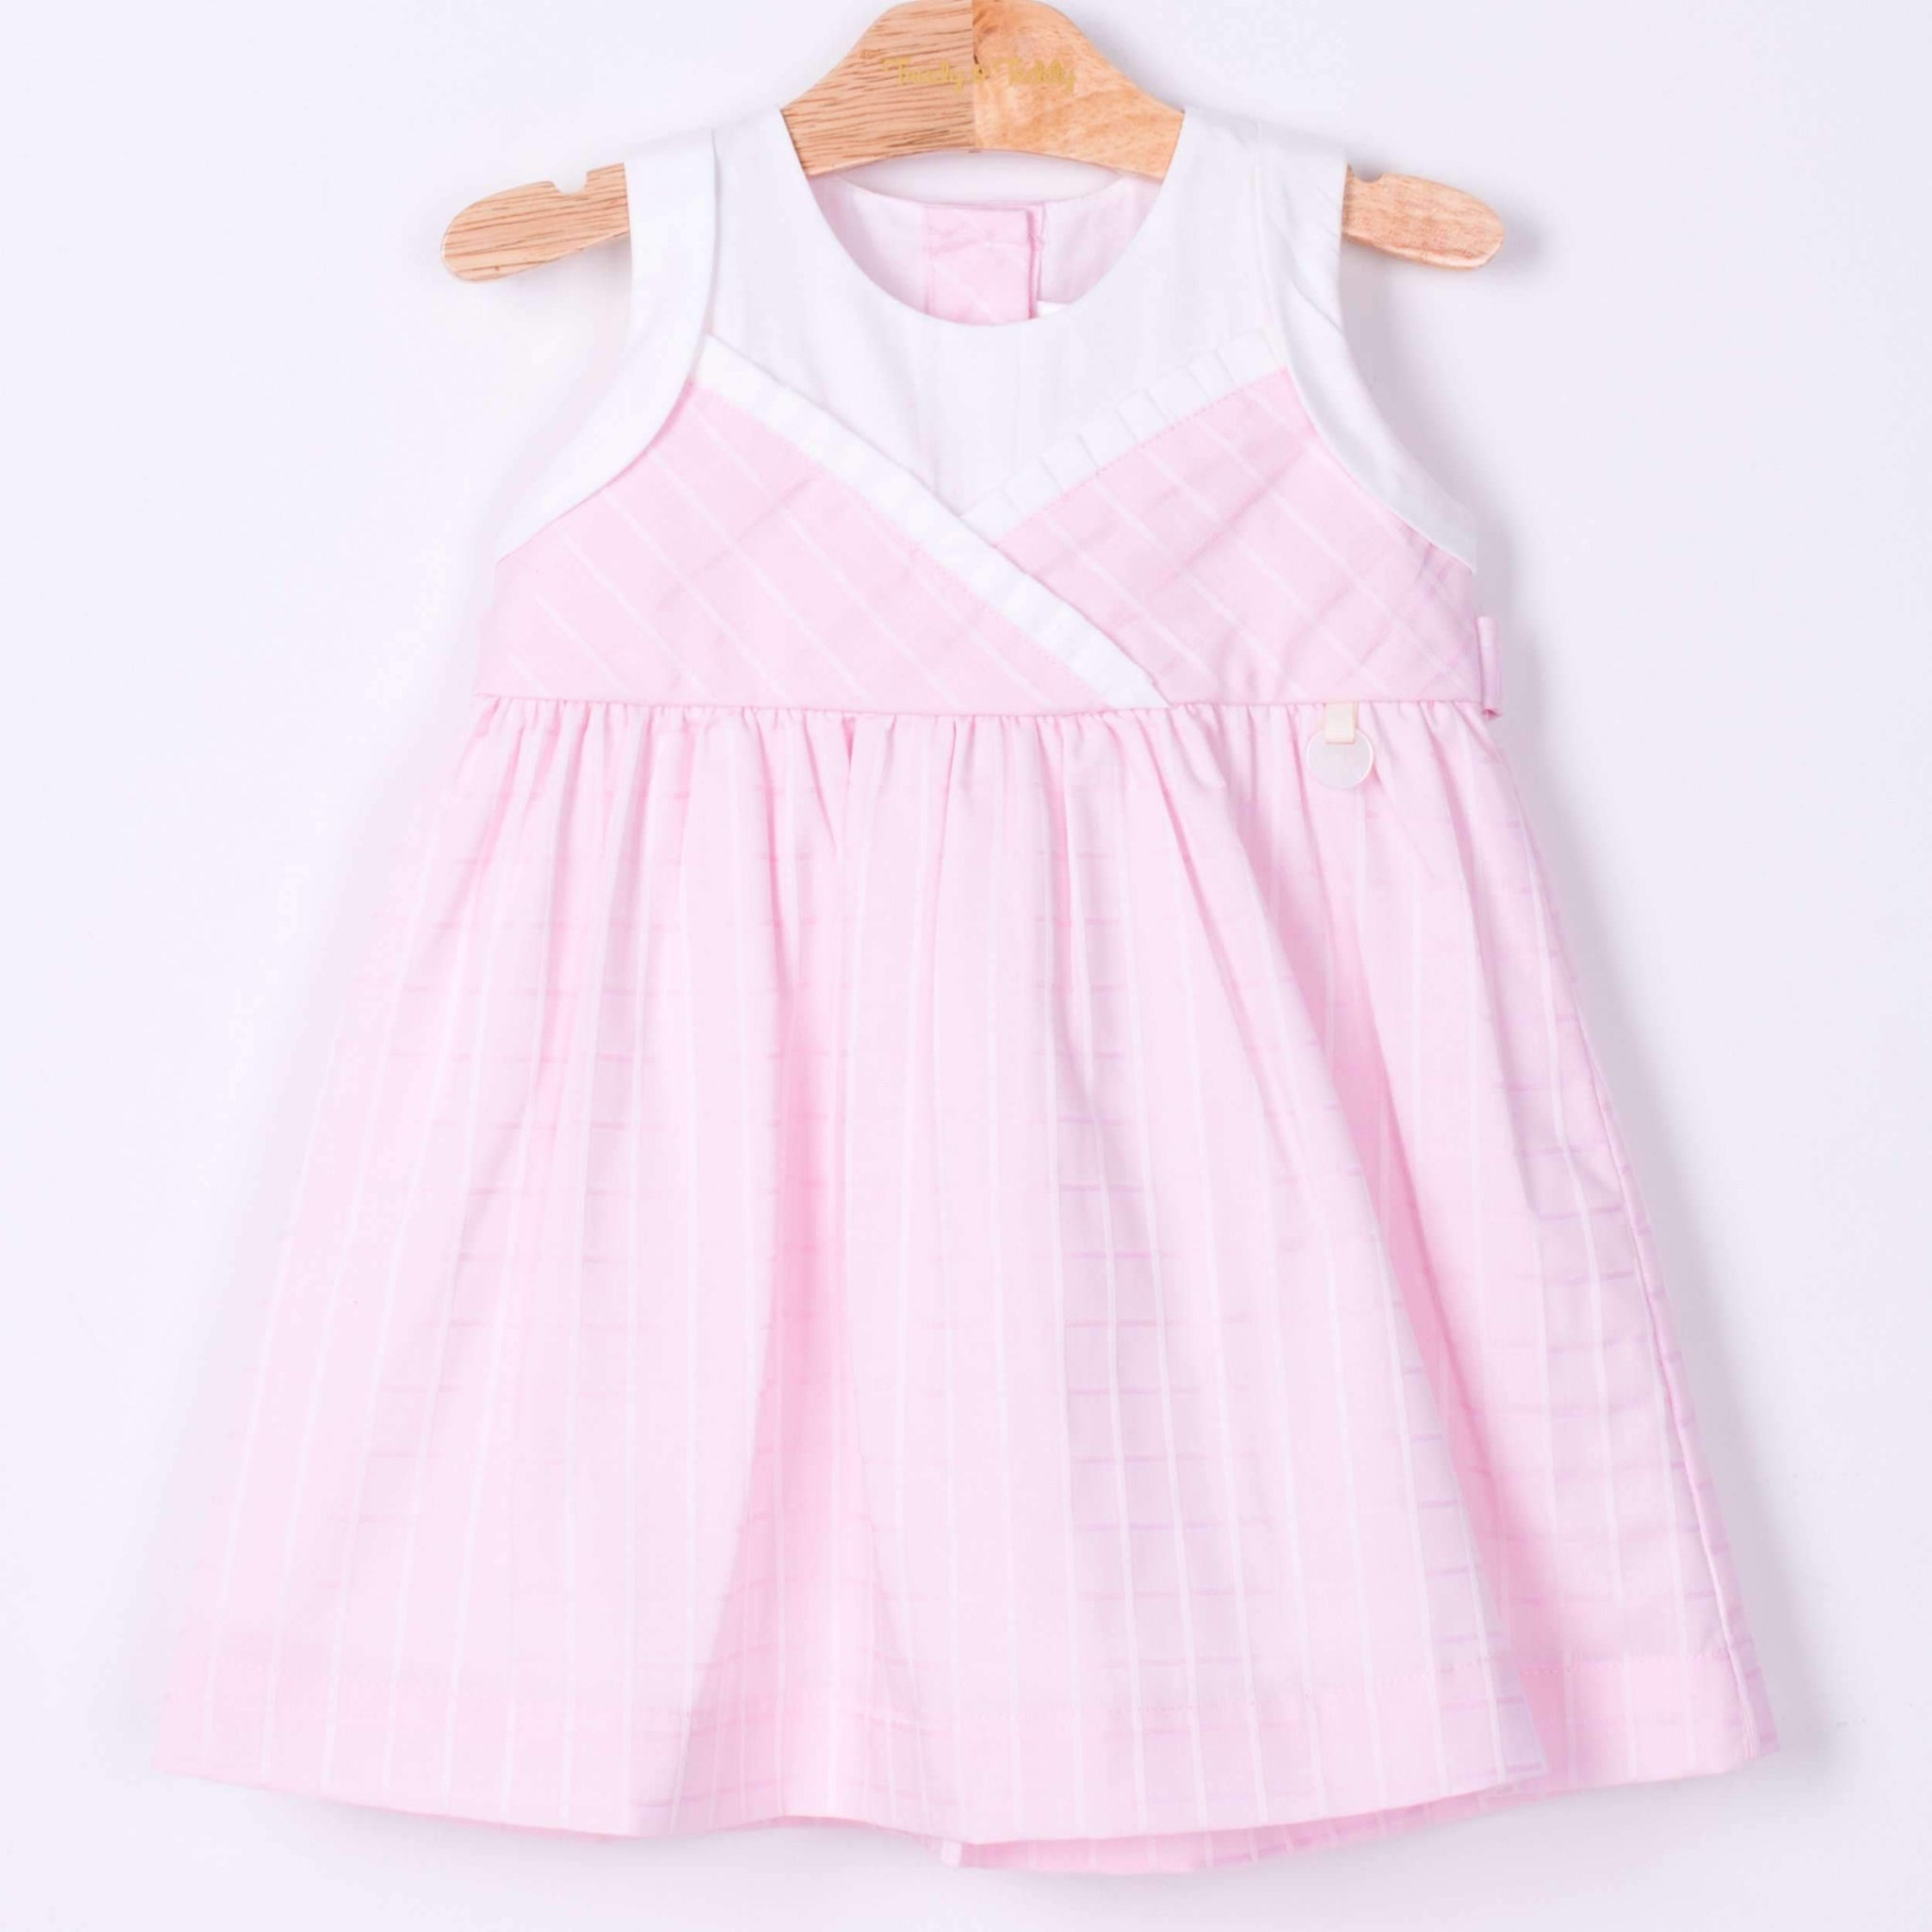 Trudy & Teddy Baby Girl Sleeveless Dress 810058-312 : Buy Trudy & Teddy online at CMG.MY